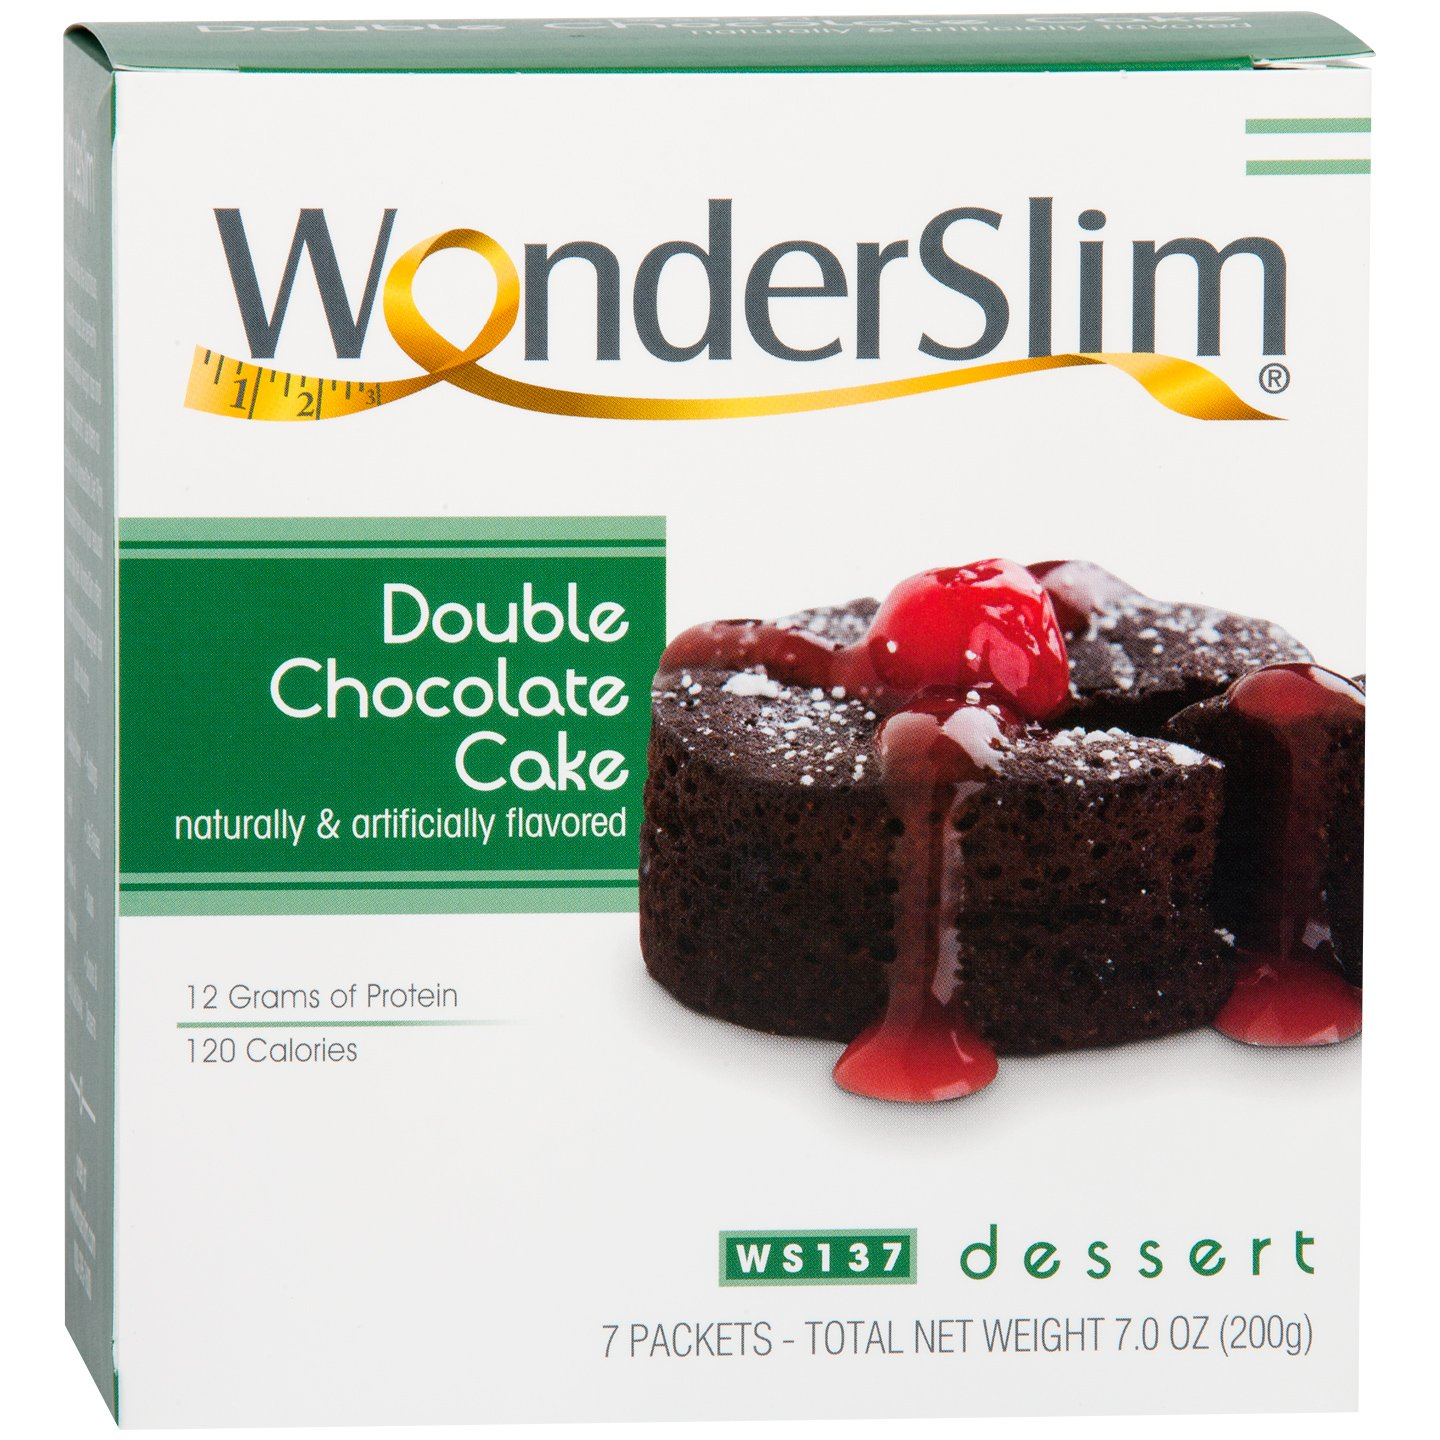 WonderSlim Low-Carb High Protein Dessert/Double Chocolate Cake Mix (7 Servings/Box) - Low Carb, Trans Fat Free